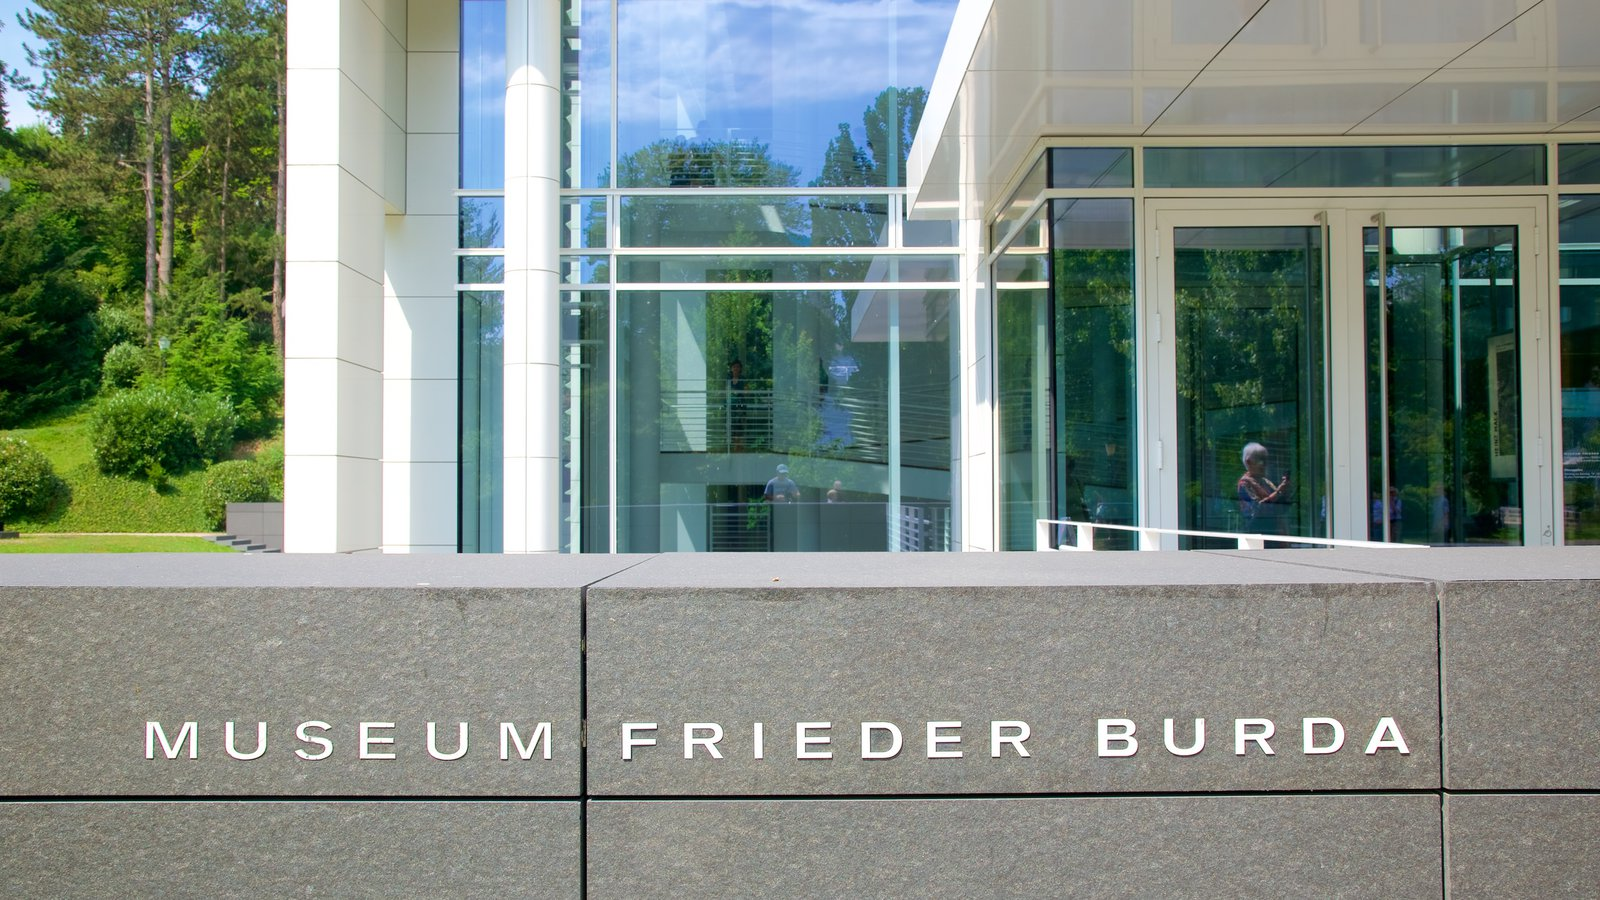 Staatliche Kunsthalle The Black Forest, Attraction Pictures: View Images of Black Forest